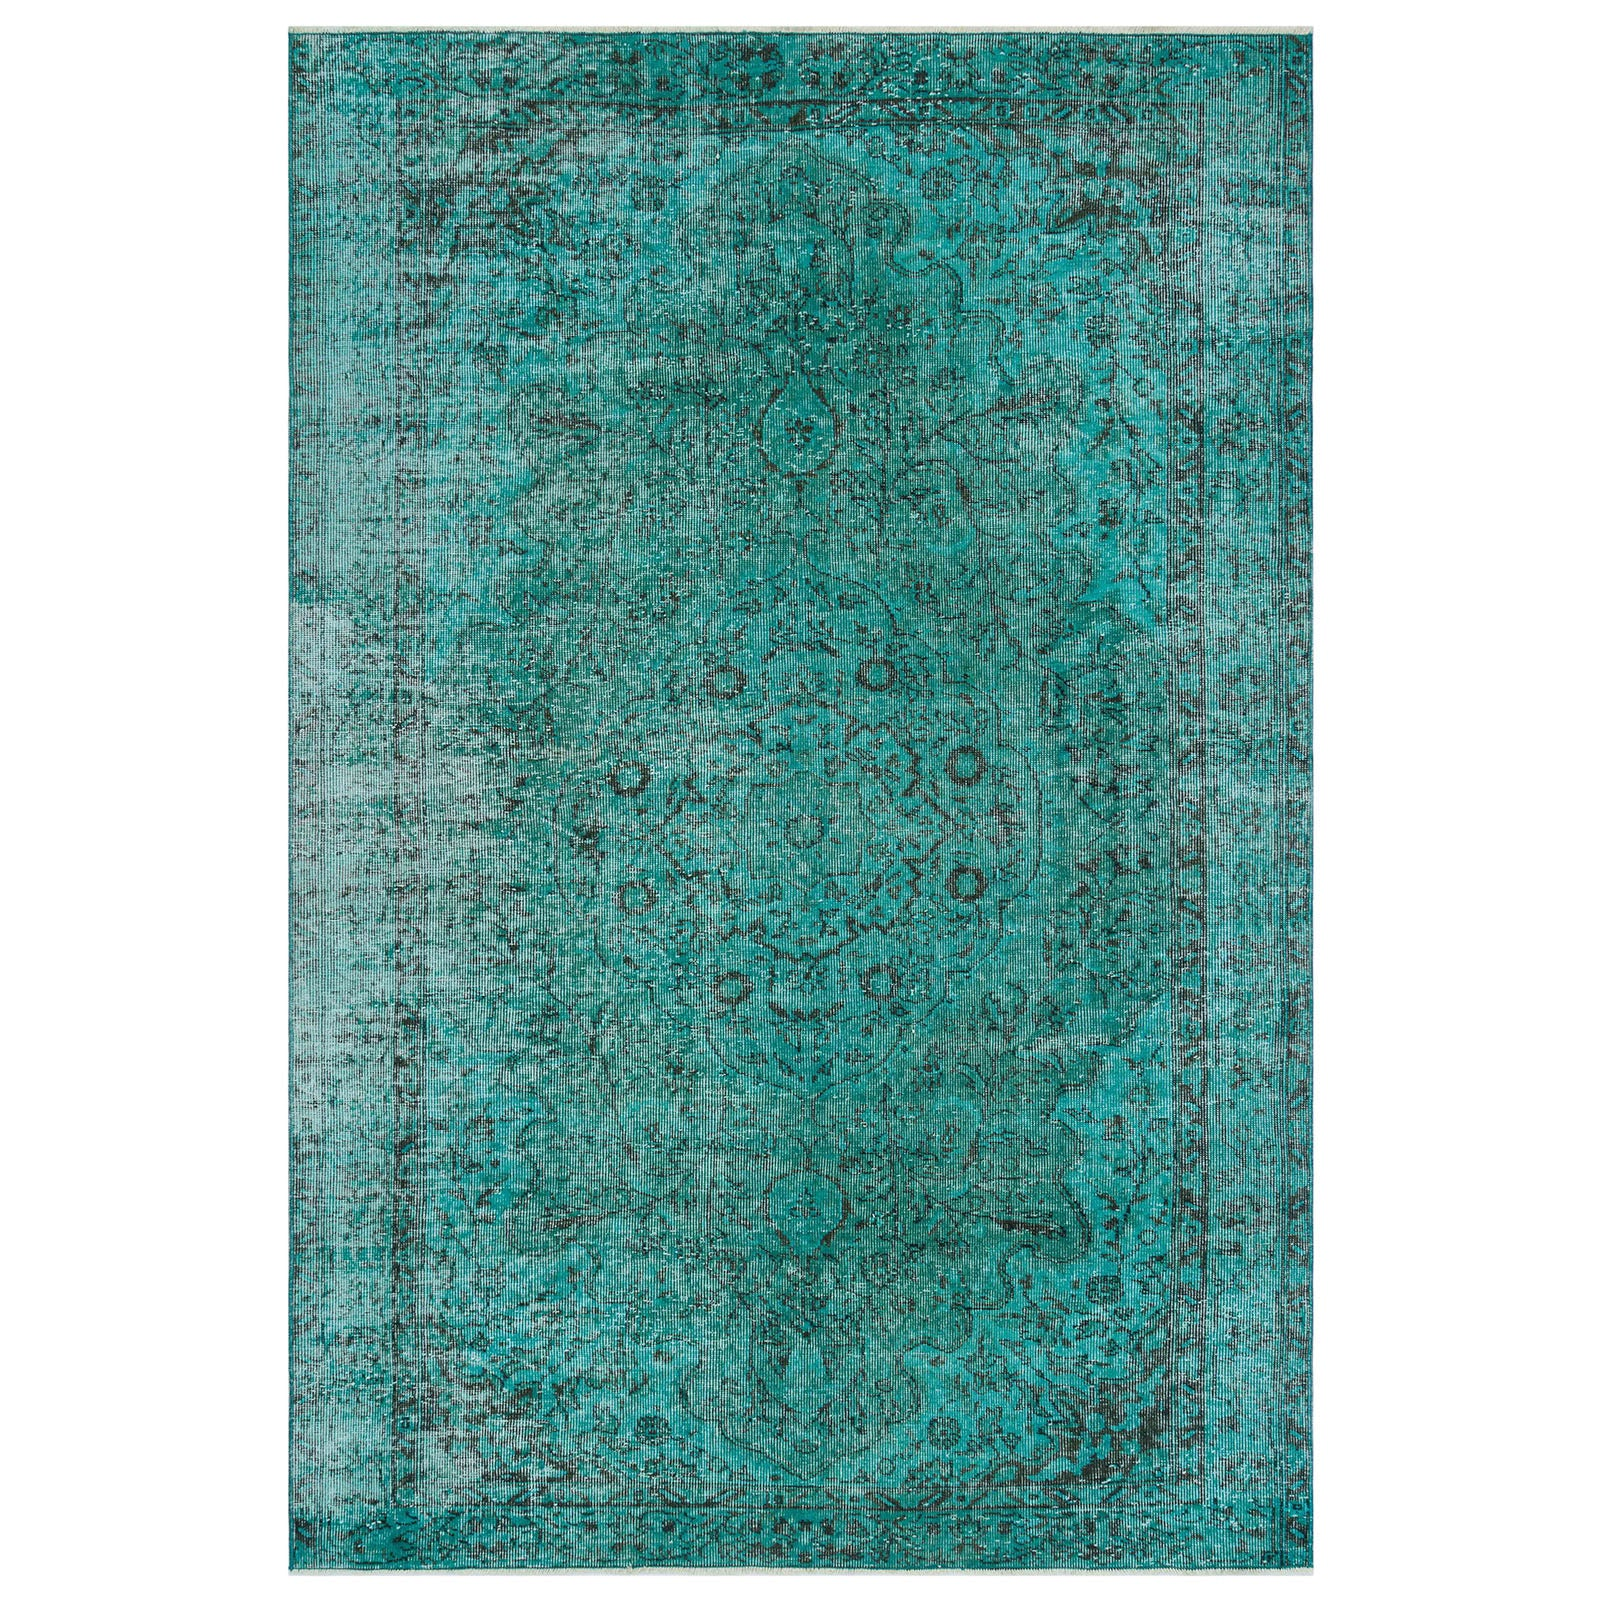 Hali 167X250 CM Bursa Handmade over dyed rug 1772